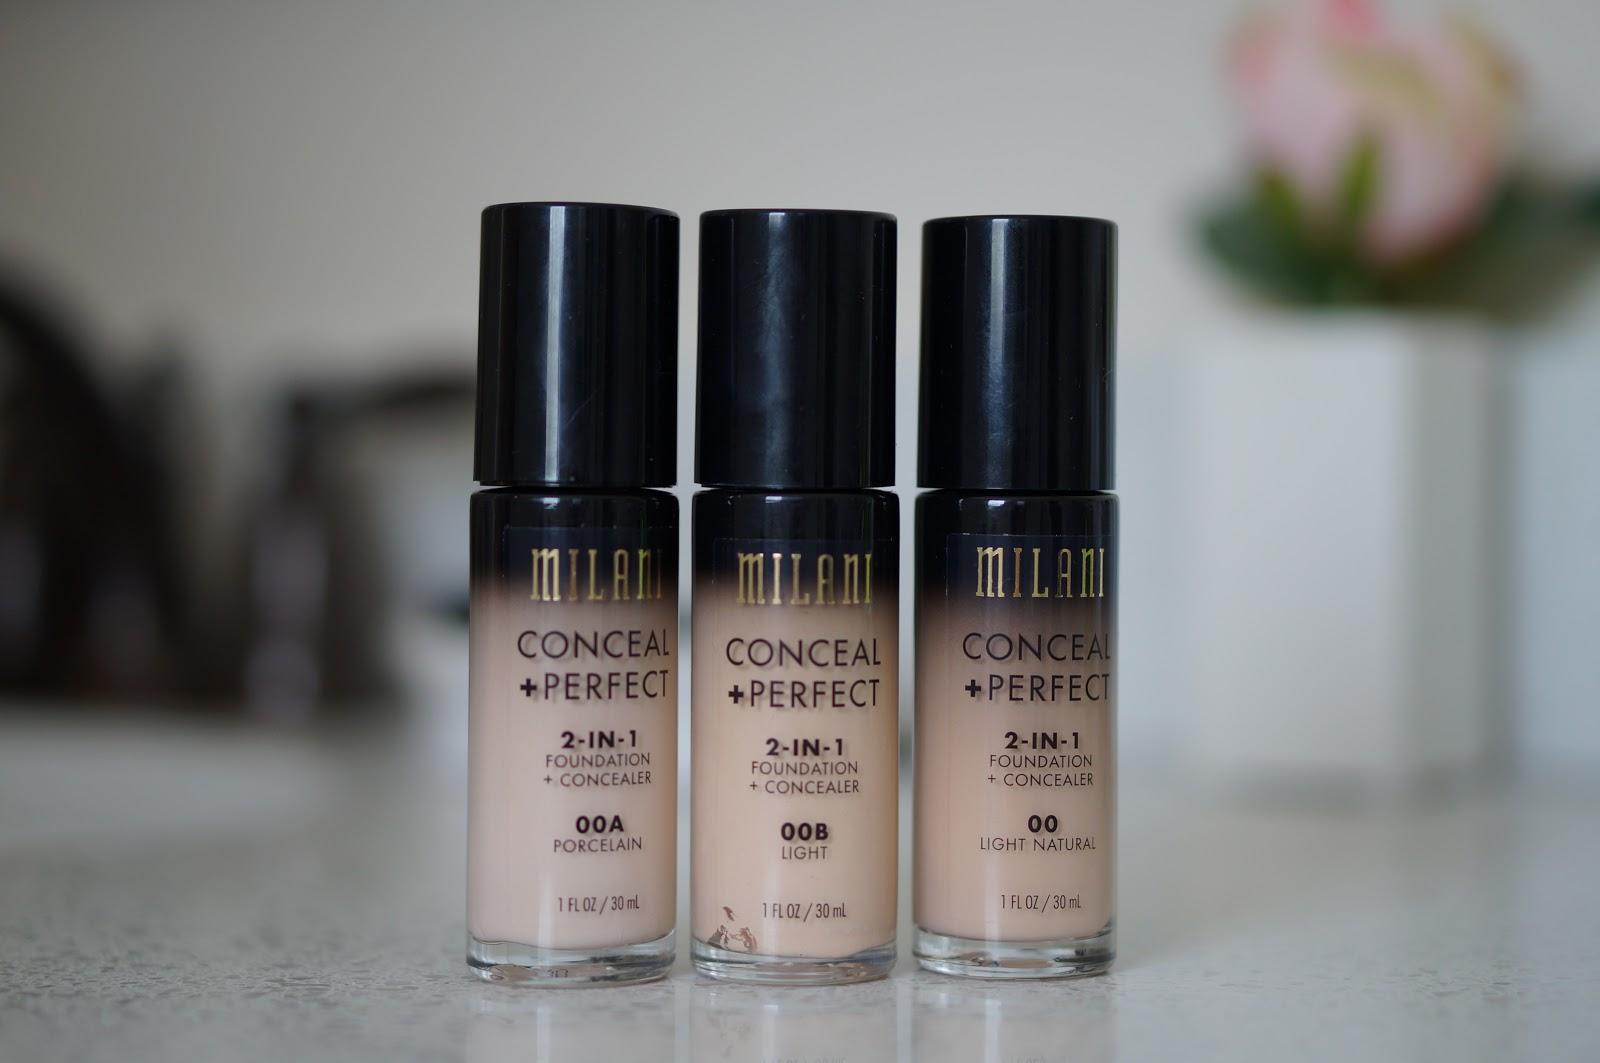 Popular North Carolina style blogger Rebecca Lately shares her review of the palest shades of Milani Conceal Perfect Foundation.  Click here to read her review!